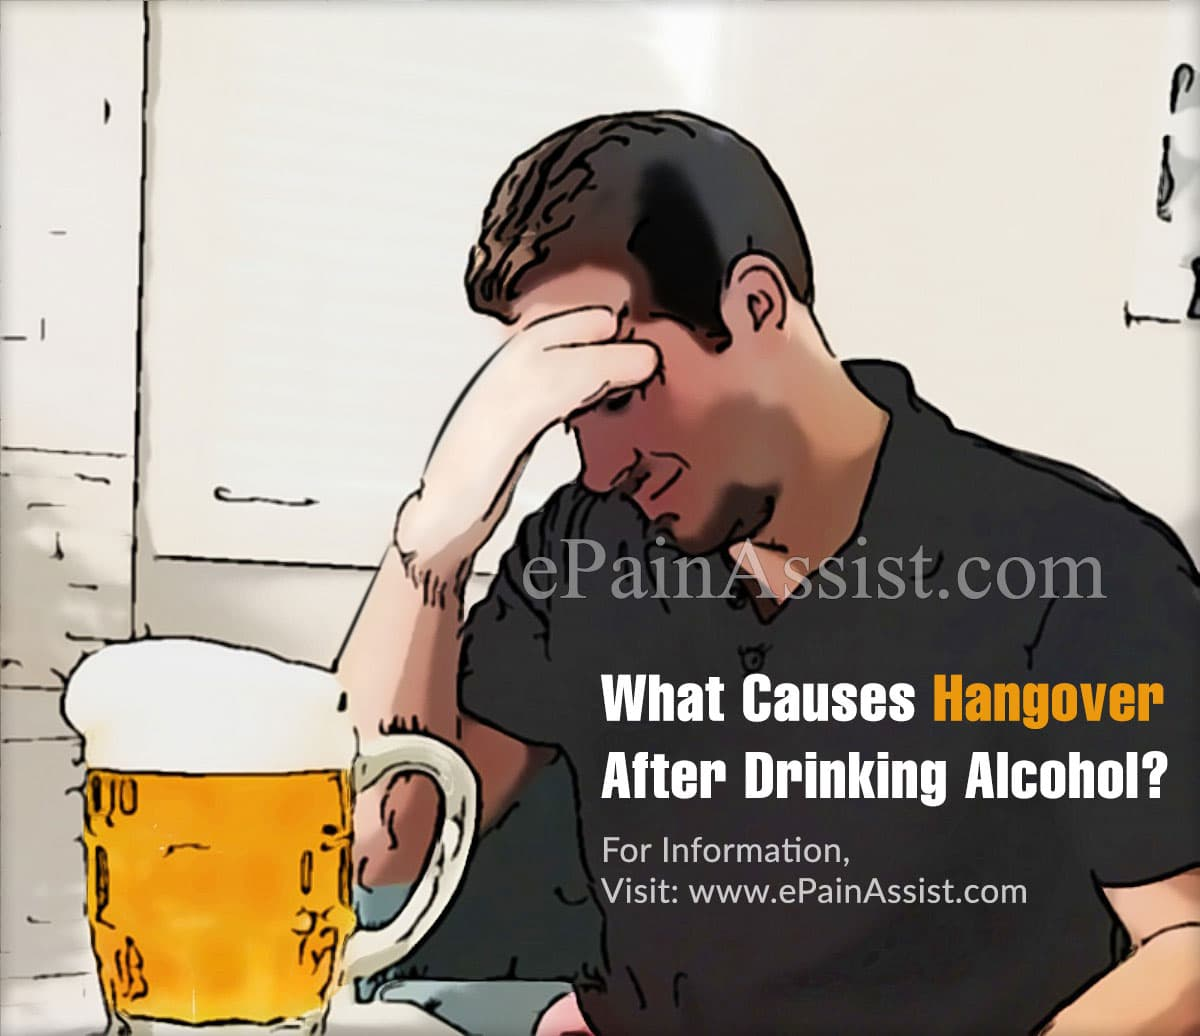 What Causes Hangover After Drinking Alcohol?